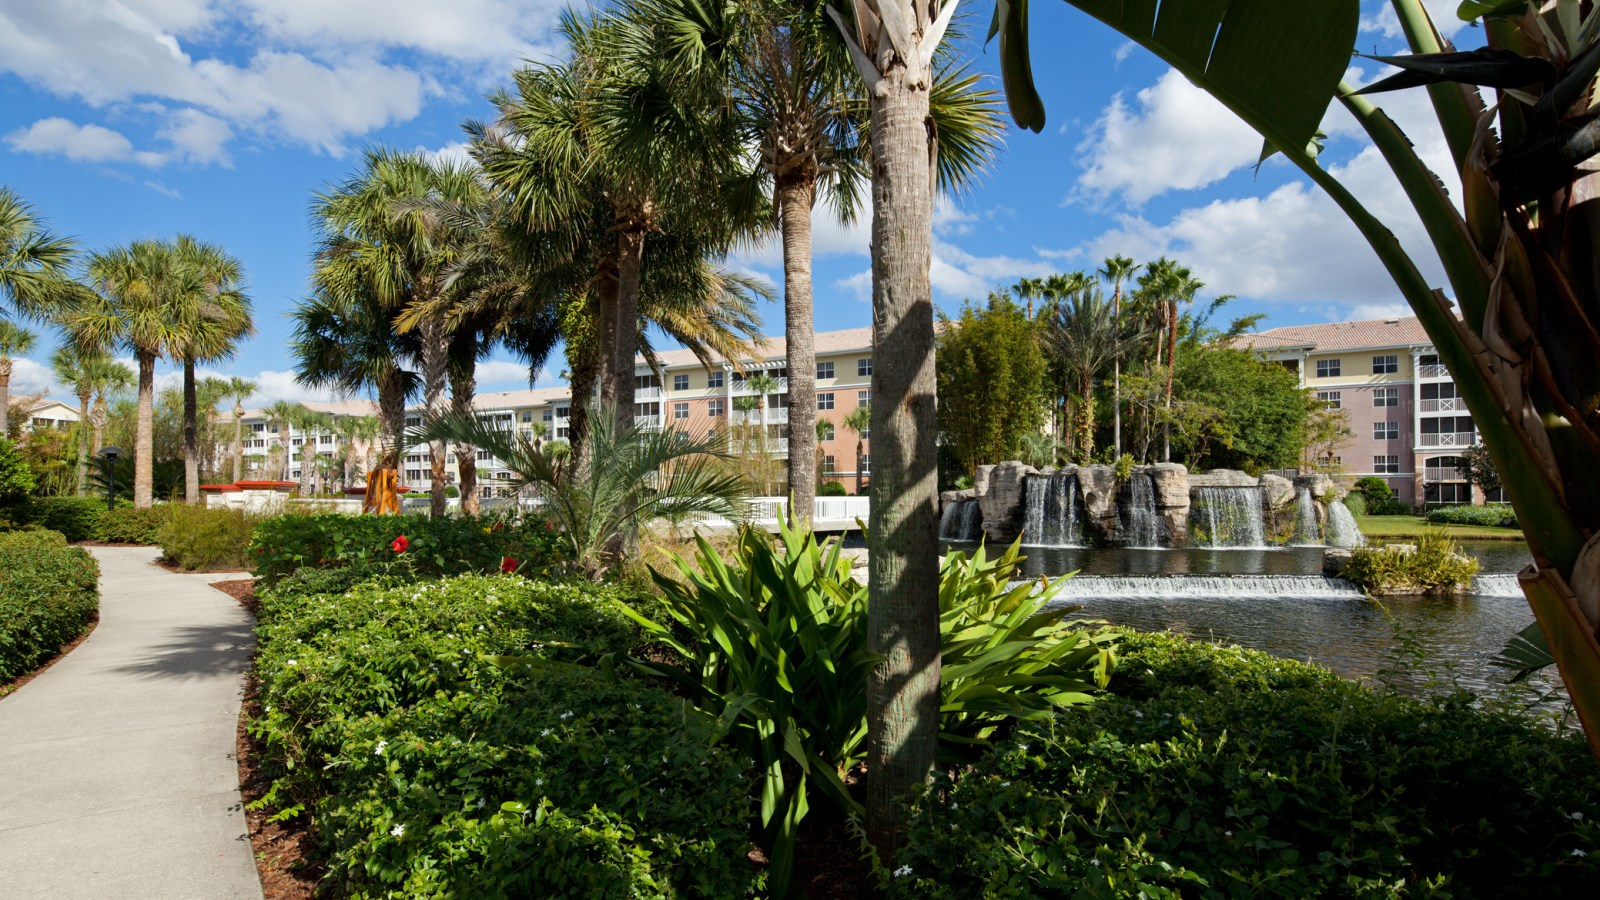 Complimentary Parking at Sheraton Vistana Villages Resort Villas, I-Drive/Orlando